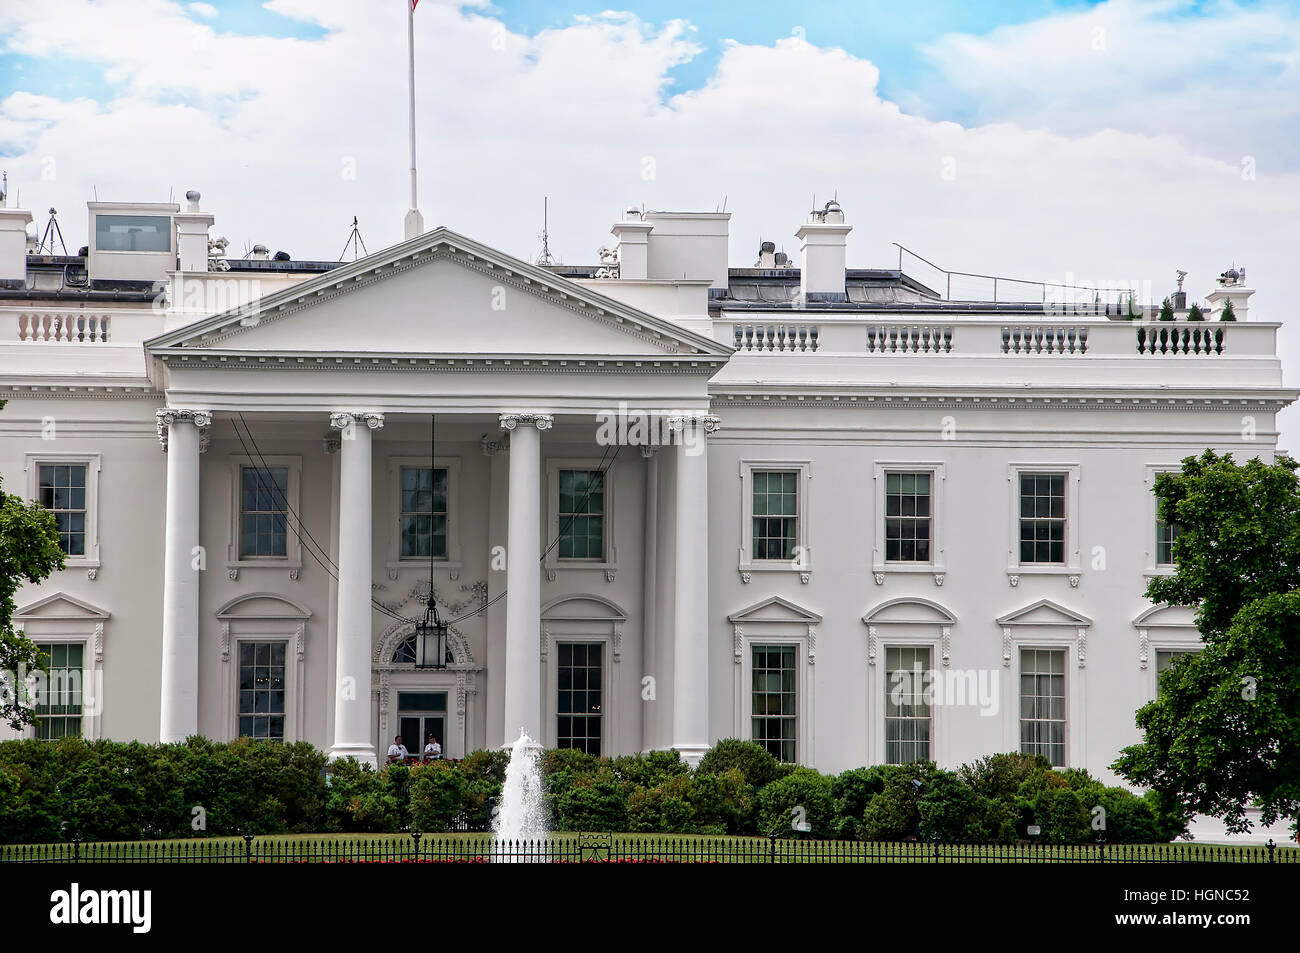 The White House In Washington The Official Residence Of The President Stock Photo Alamy